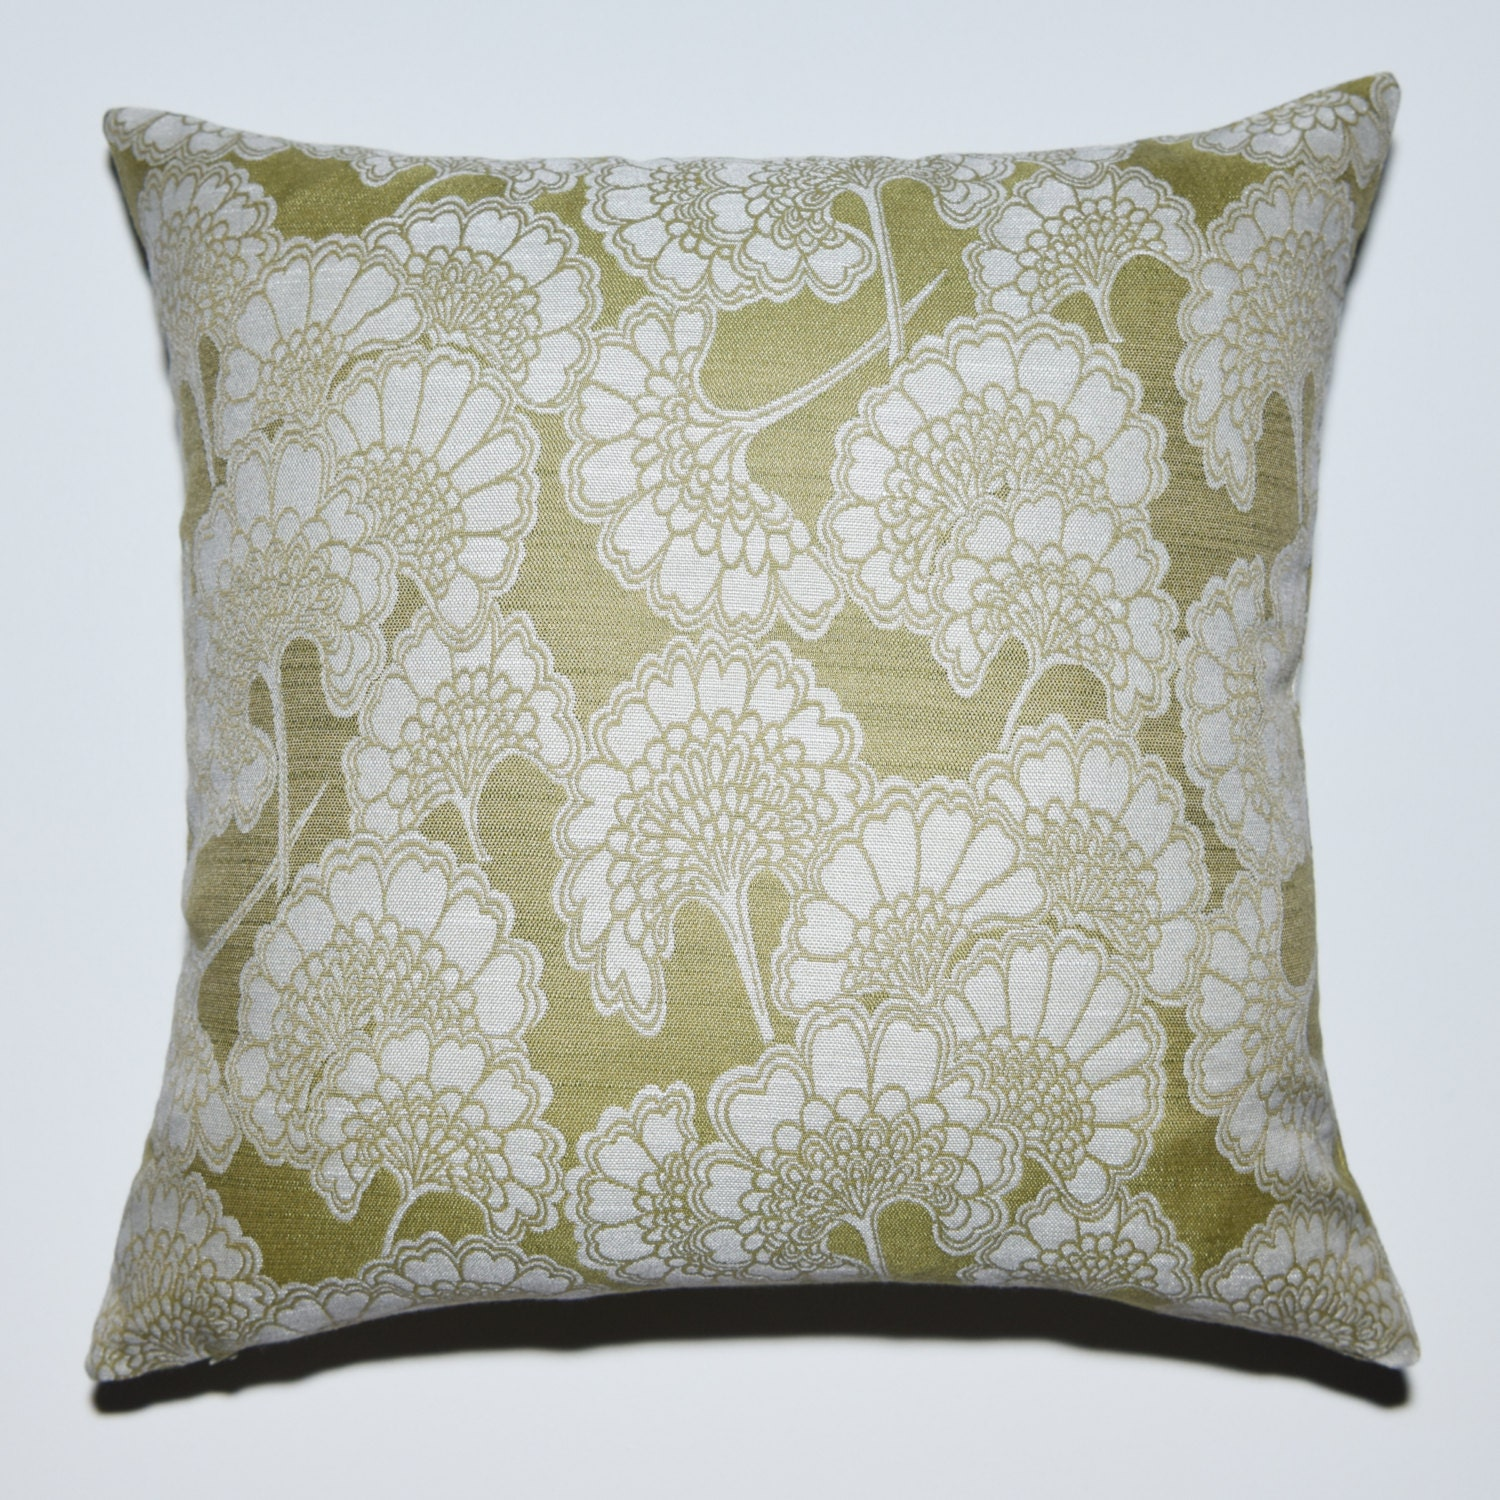 Sage Green Throw Pillow Covers : Decorative Pillow Cover Sage Green Off White Woven